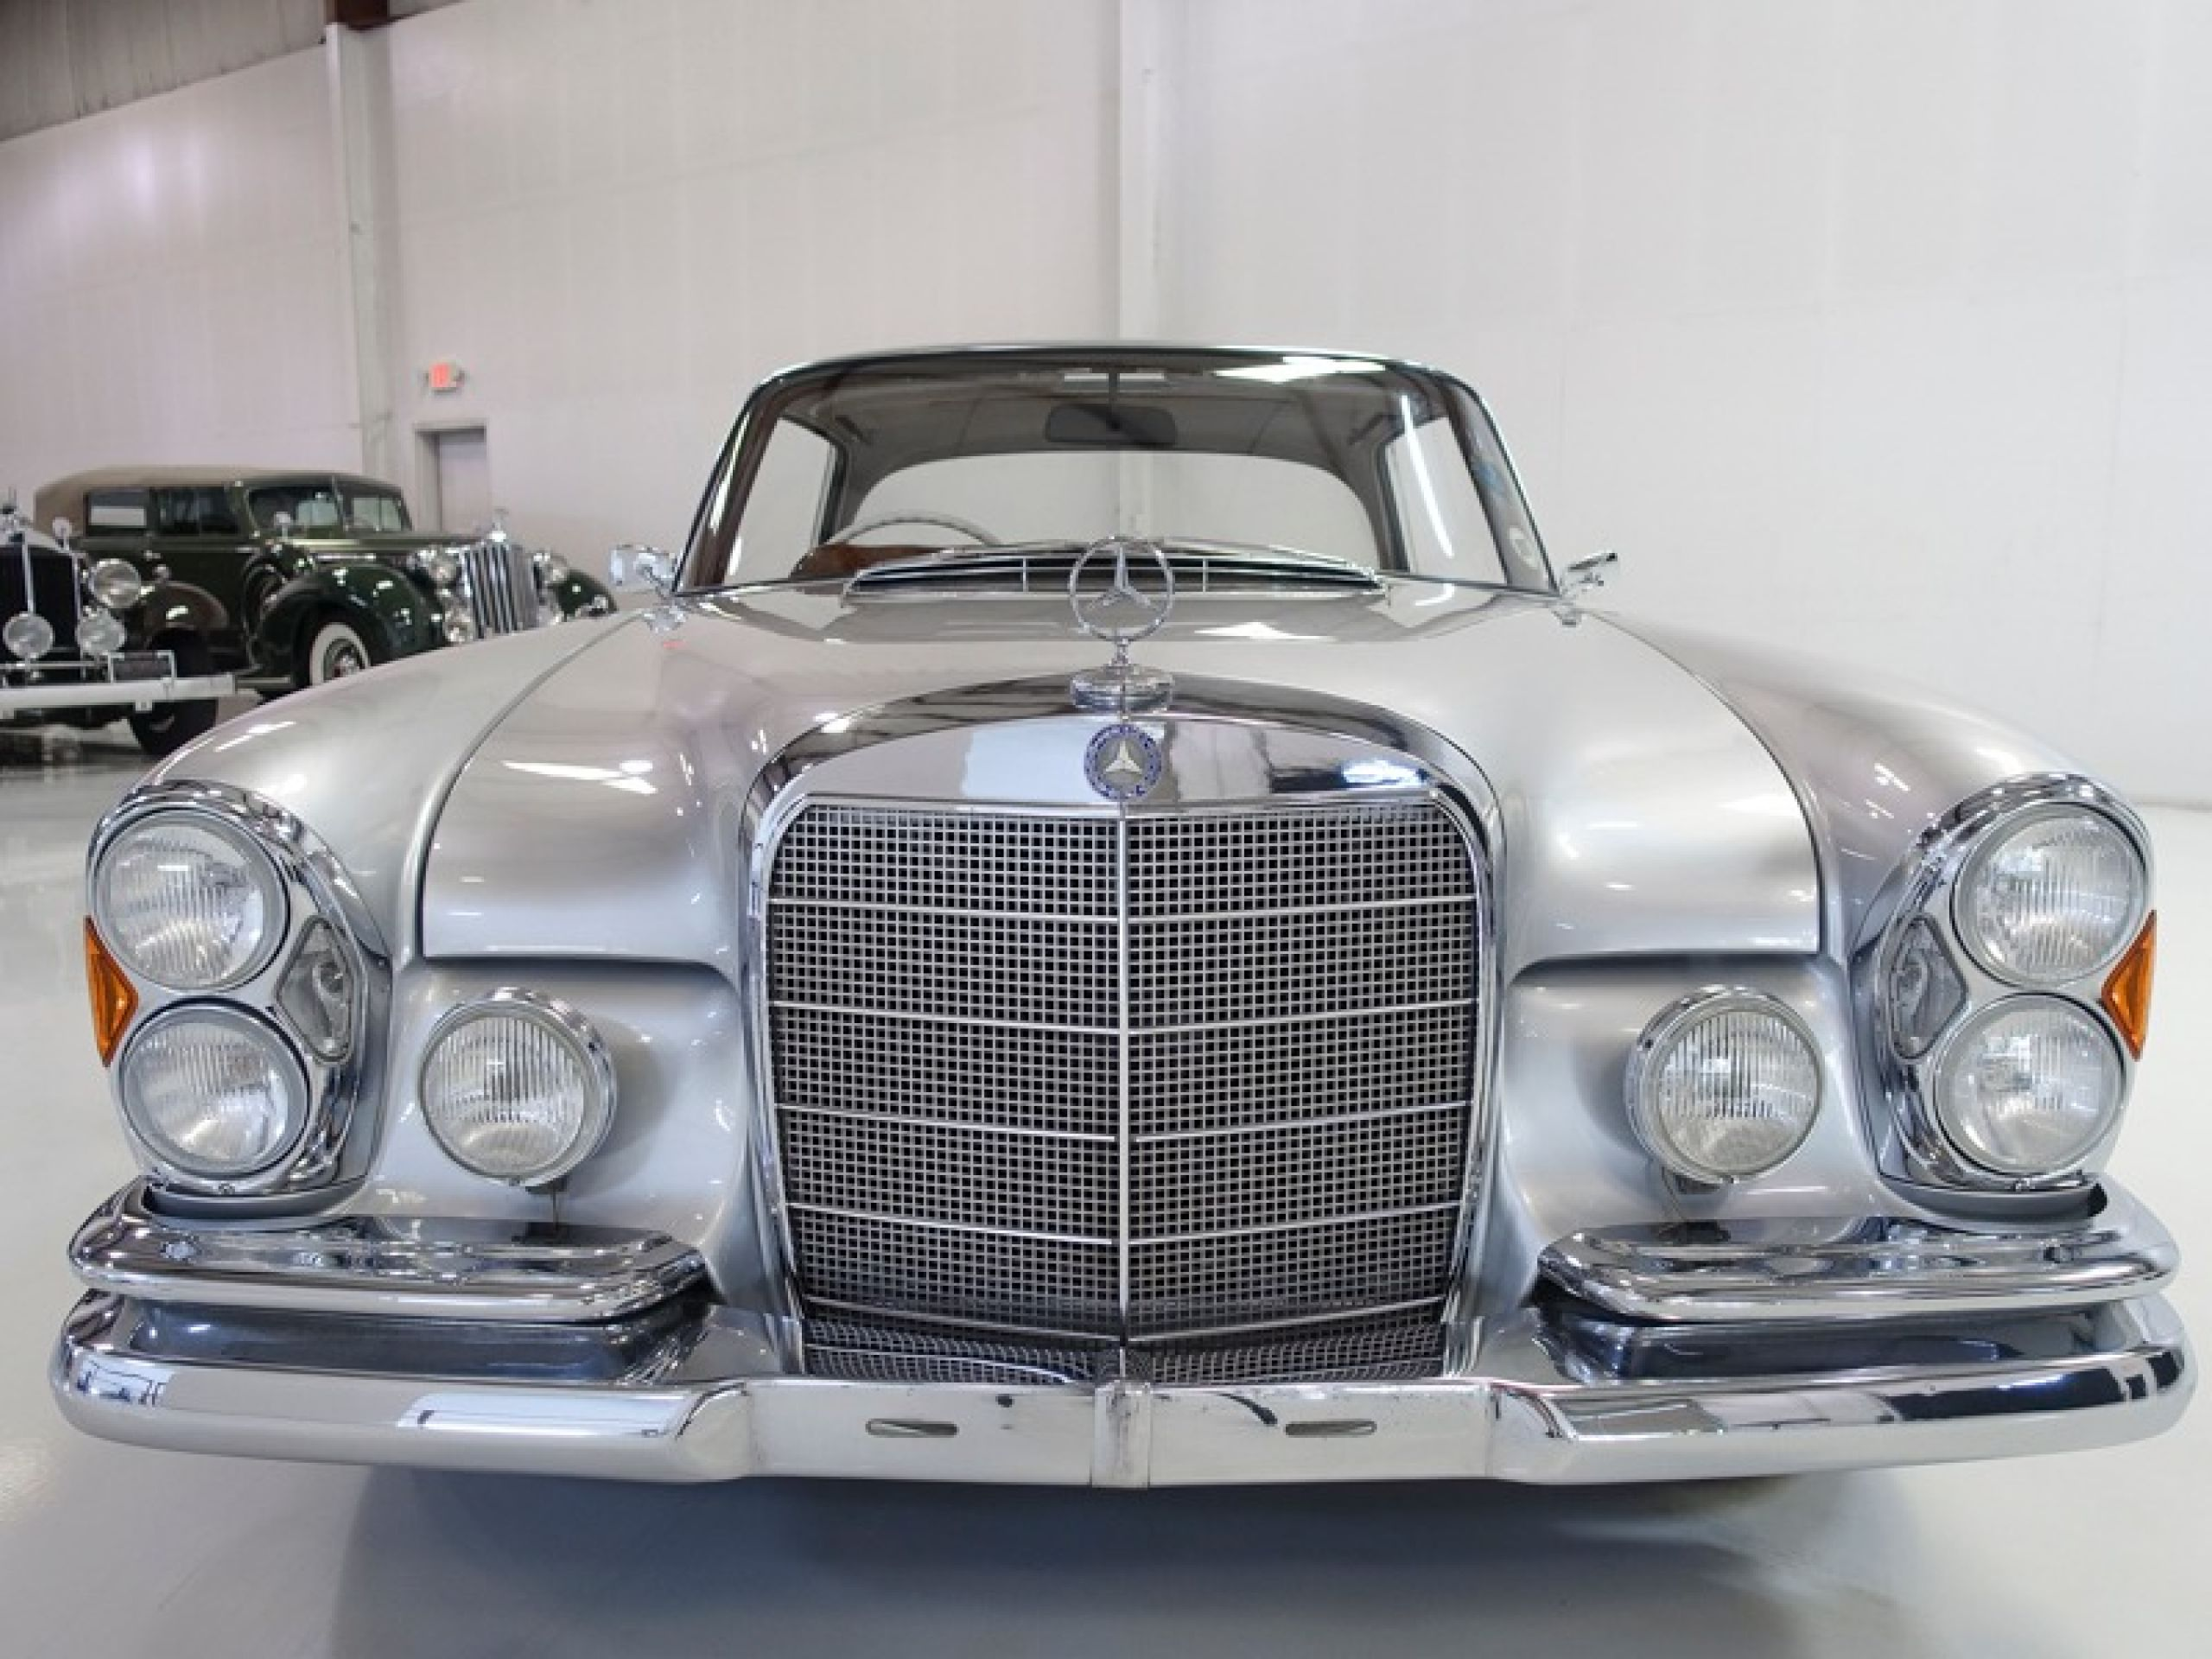 1964 Mercedes-Benz 300SE Sunroof Coupe